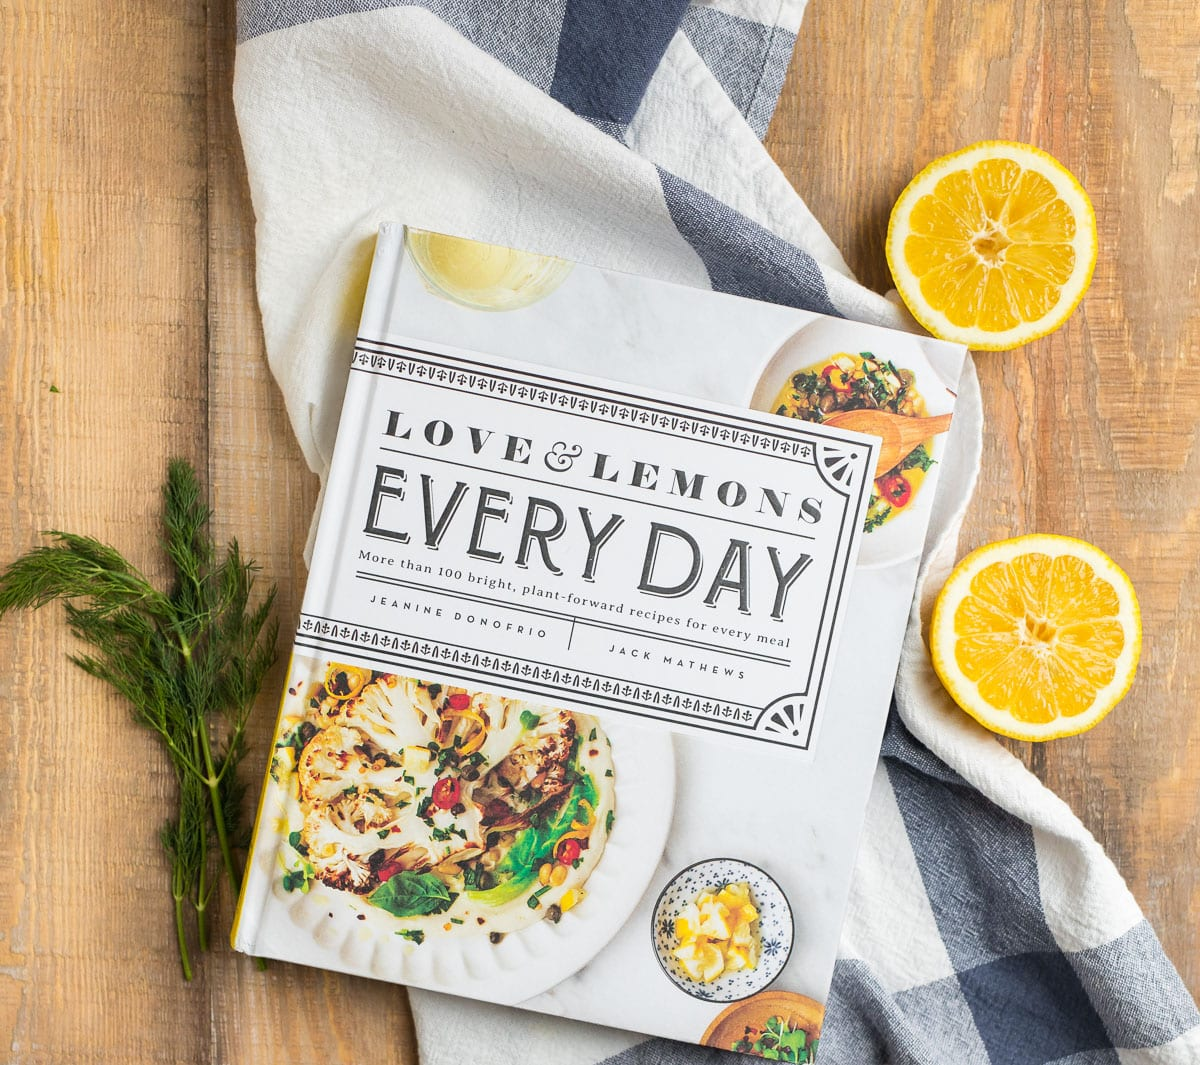 A cookbook filled with tons of delicious and healthy recipes